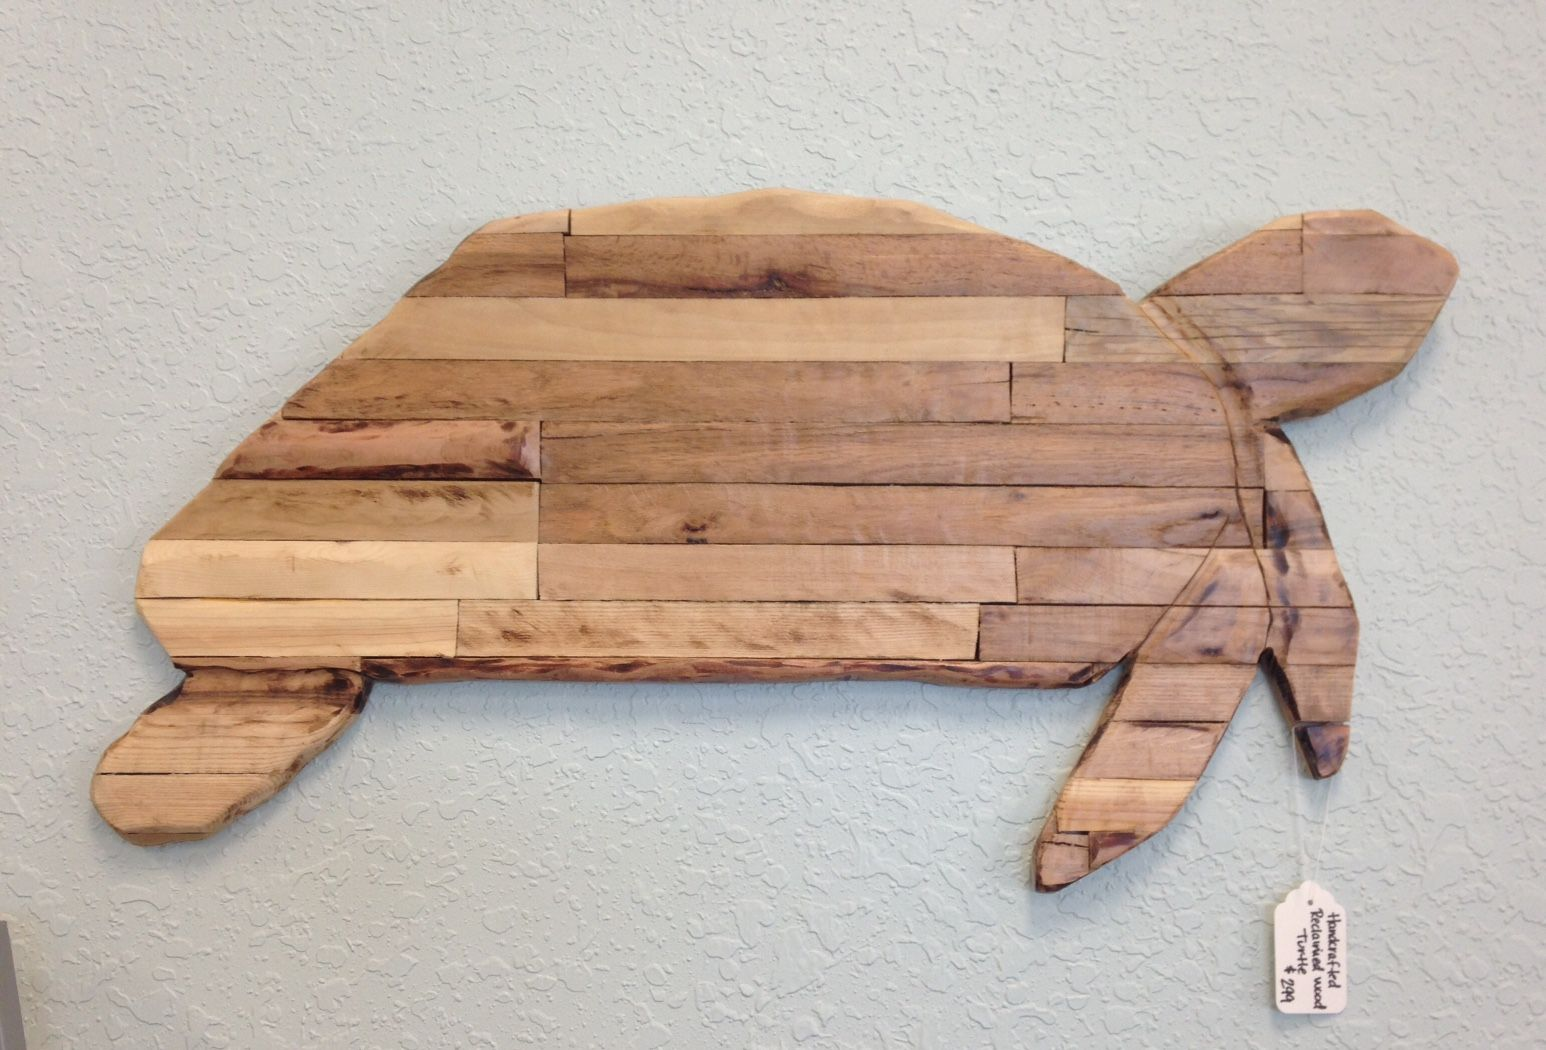 Reclaimed wood turtle made by local artist Chris McCrae